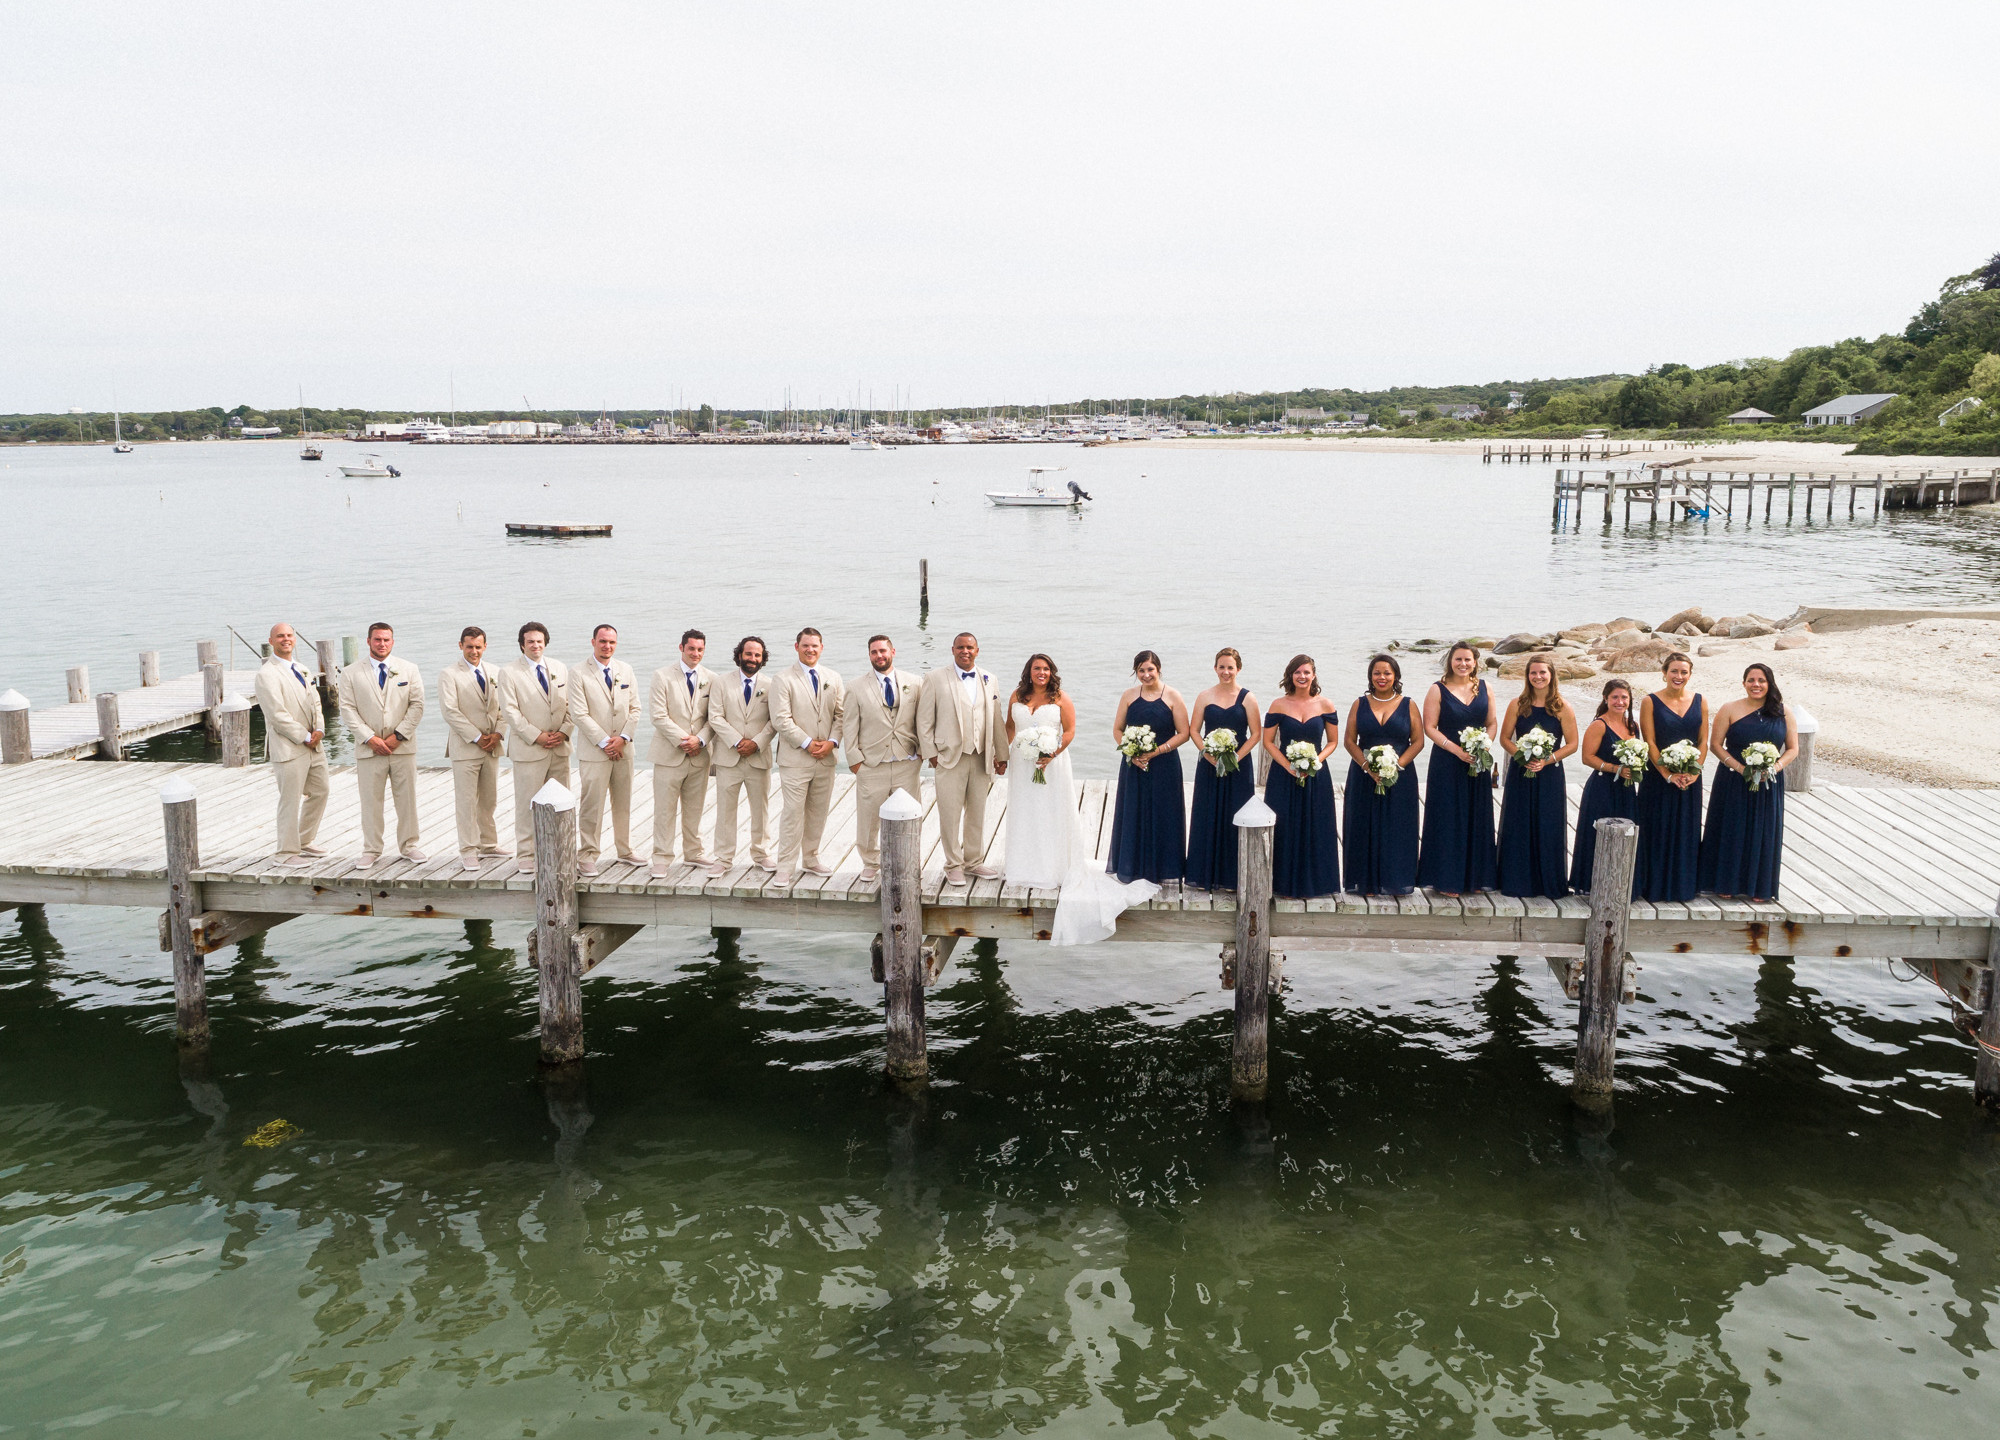 A drone photo of a large wedding party on the pier at the Vineyard Haven Yacht Club on Martha's Vineyard photo by David Welch Photography